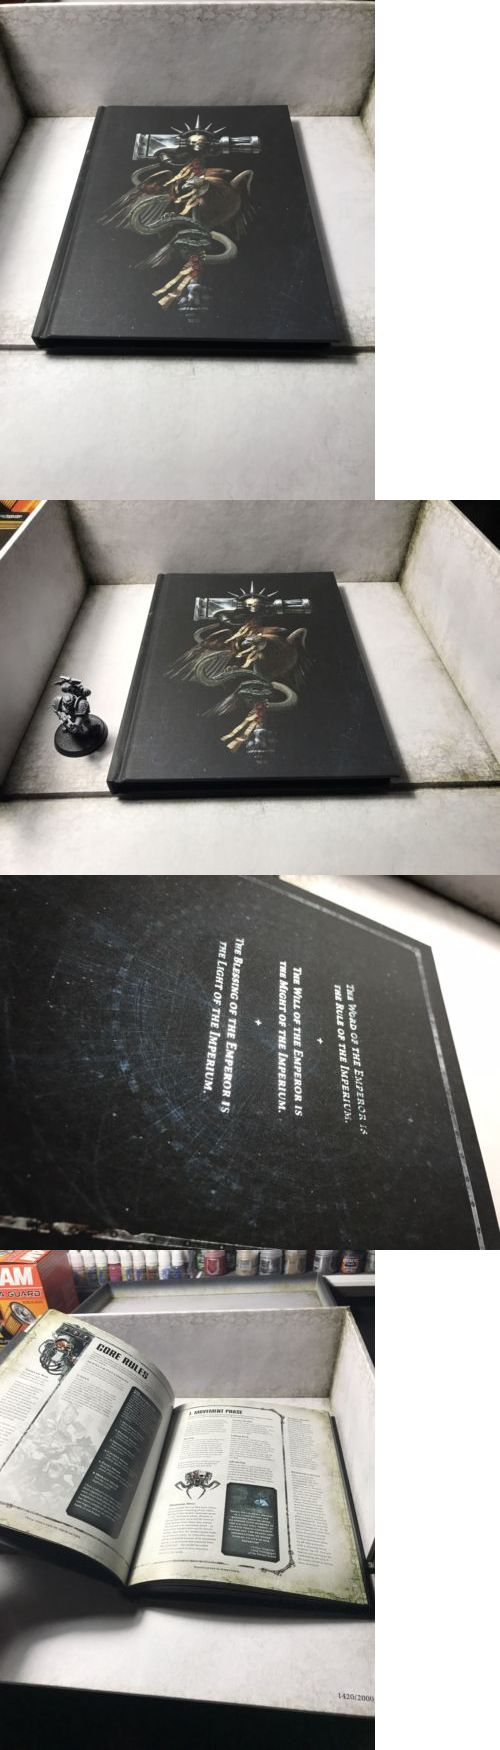 40K Rulebooks and Publications 90944: Warhammer 40K 8Th Limited Collector S Edition Hard Cover Mini Rulebook -> BUY IT NOW ONLY: $75 on eBay!